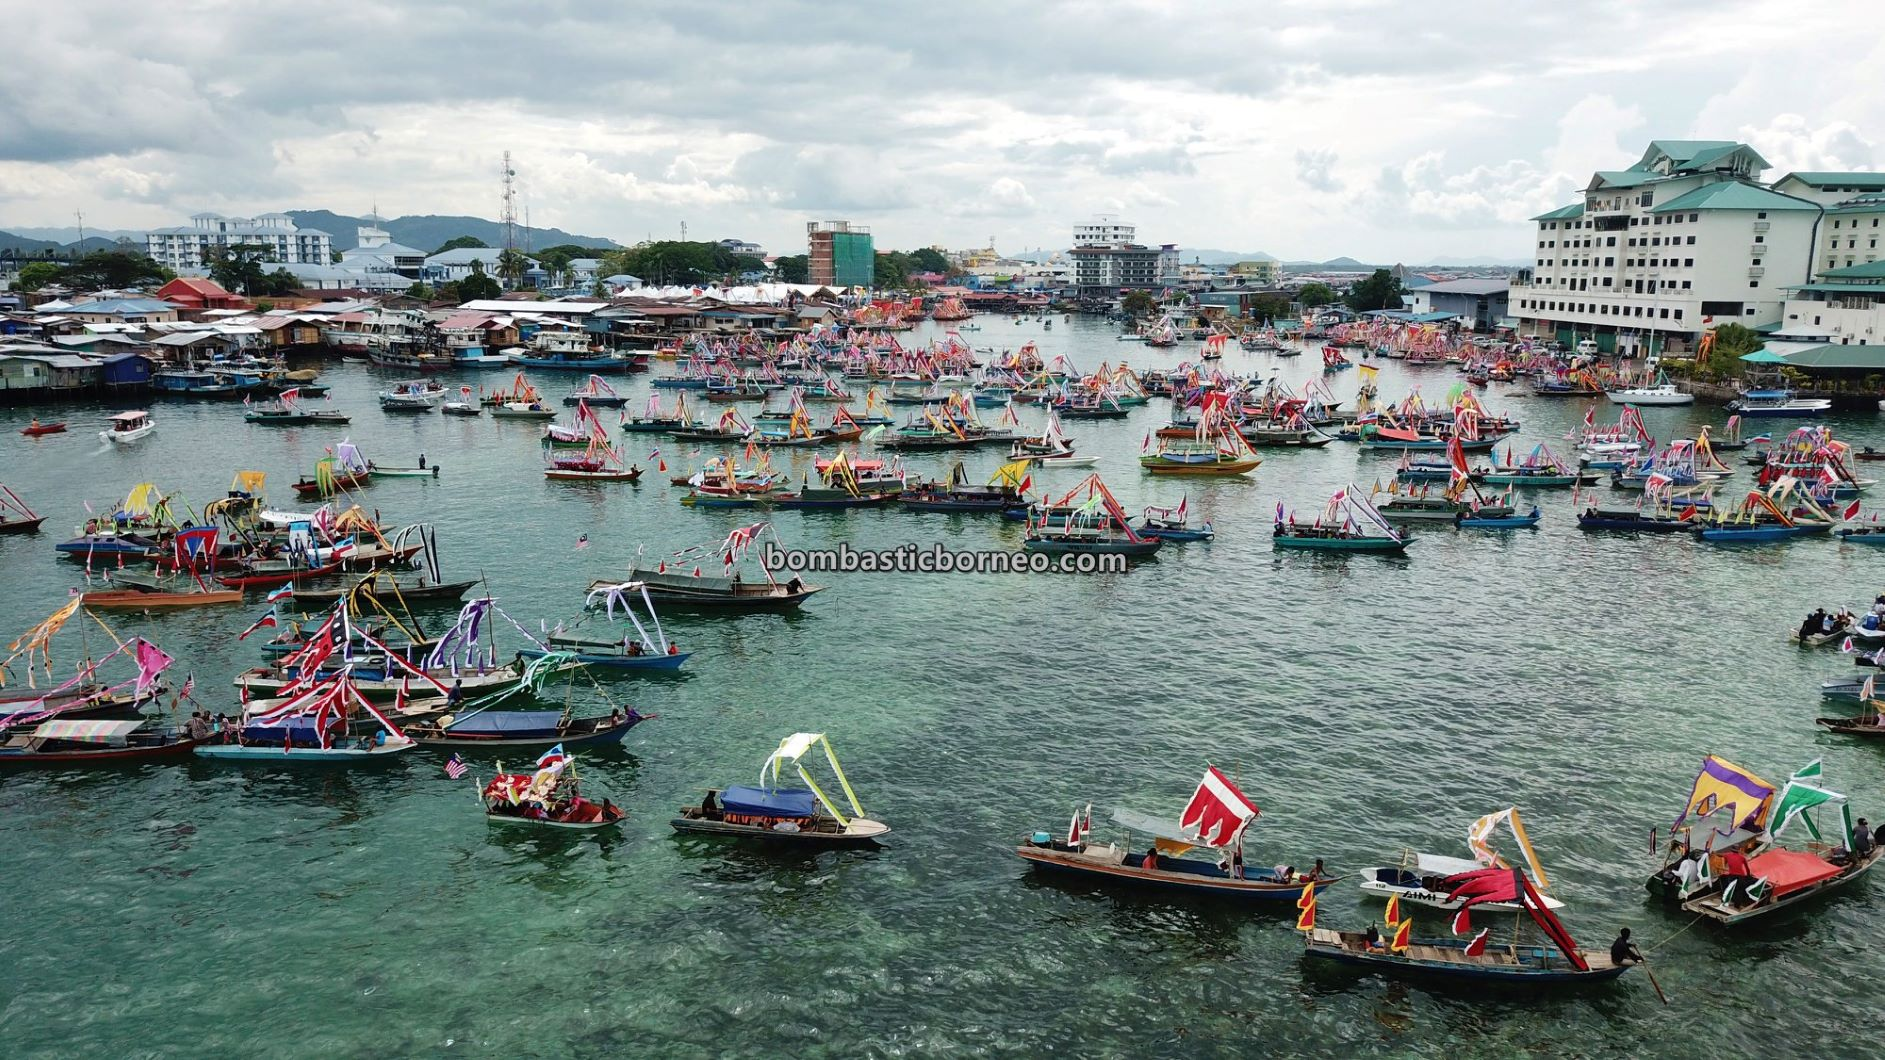 Pesta Regatta Lepa, Suku Bajau Laut, ethnic, culture, traditional, Semporna, Malaysia, Tourism, tourist attraction, travel guide, Trans Border, Borneo, 探索婆罗洲马来西亚, 沙巴彩船节旅游, 仙本那巴夭民族,